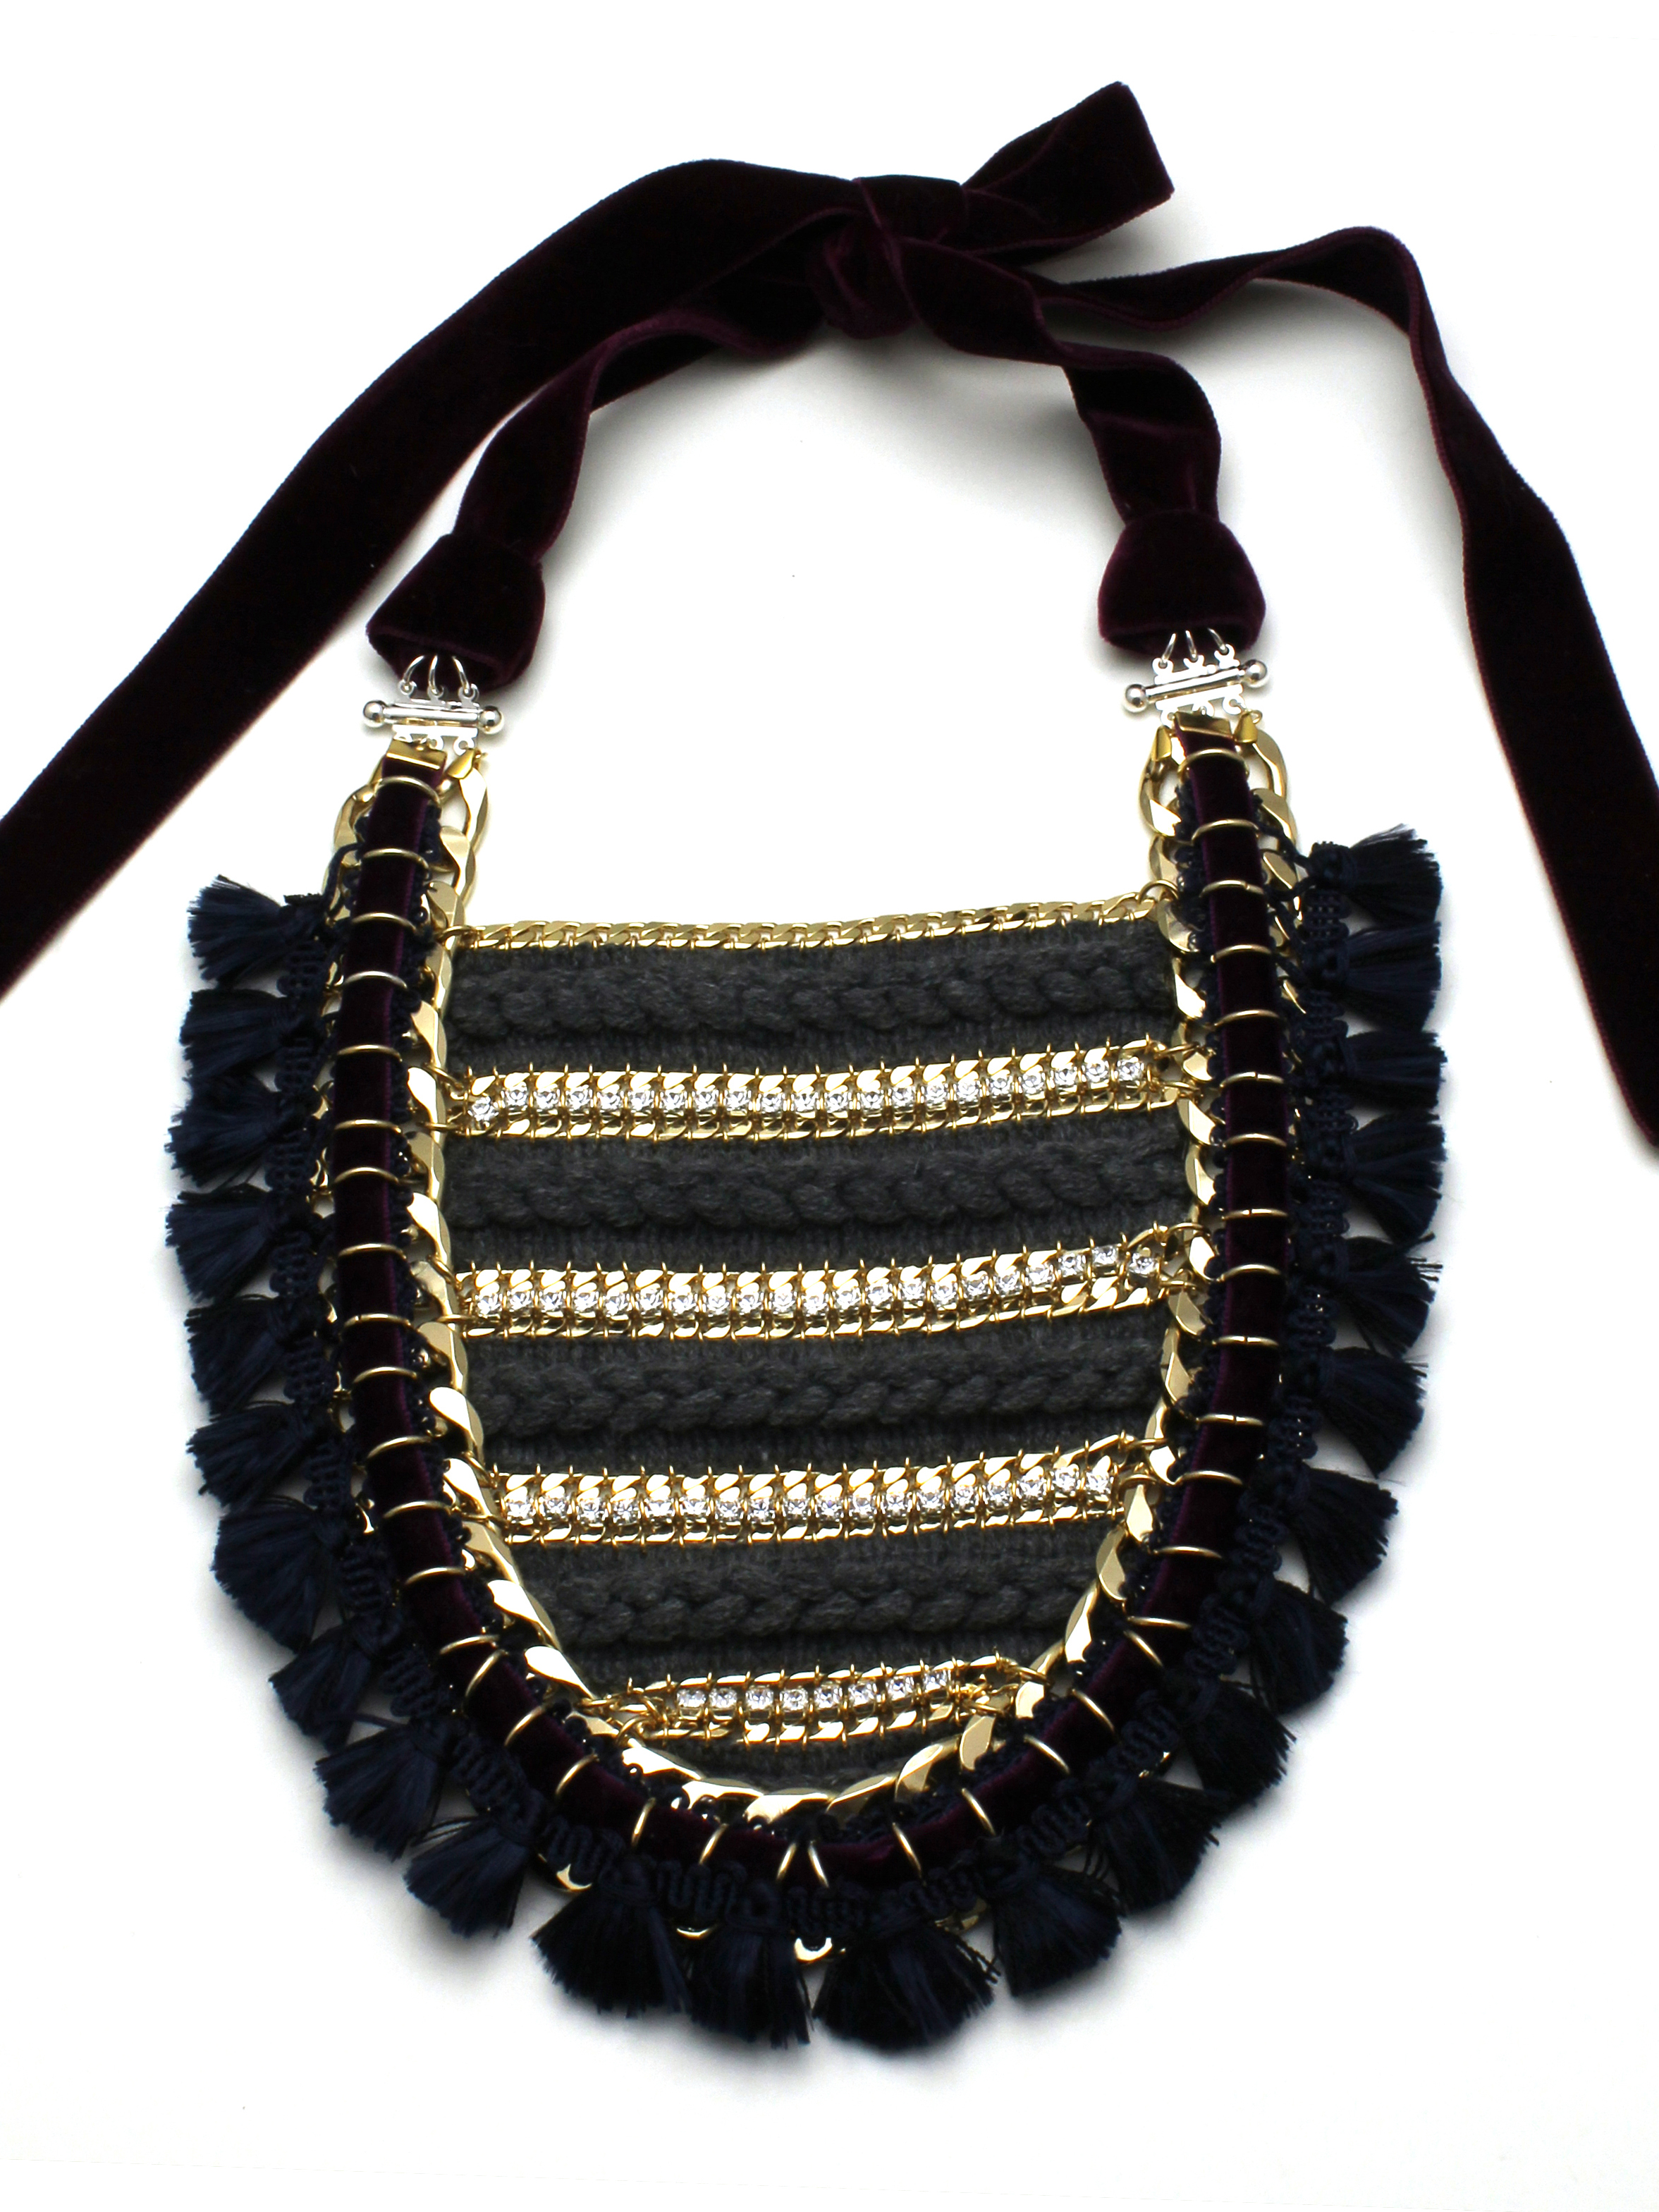 043 - Wool & Crystal Bib Necklace.jpg